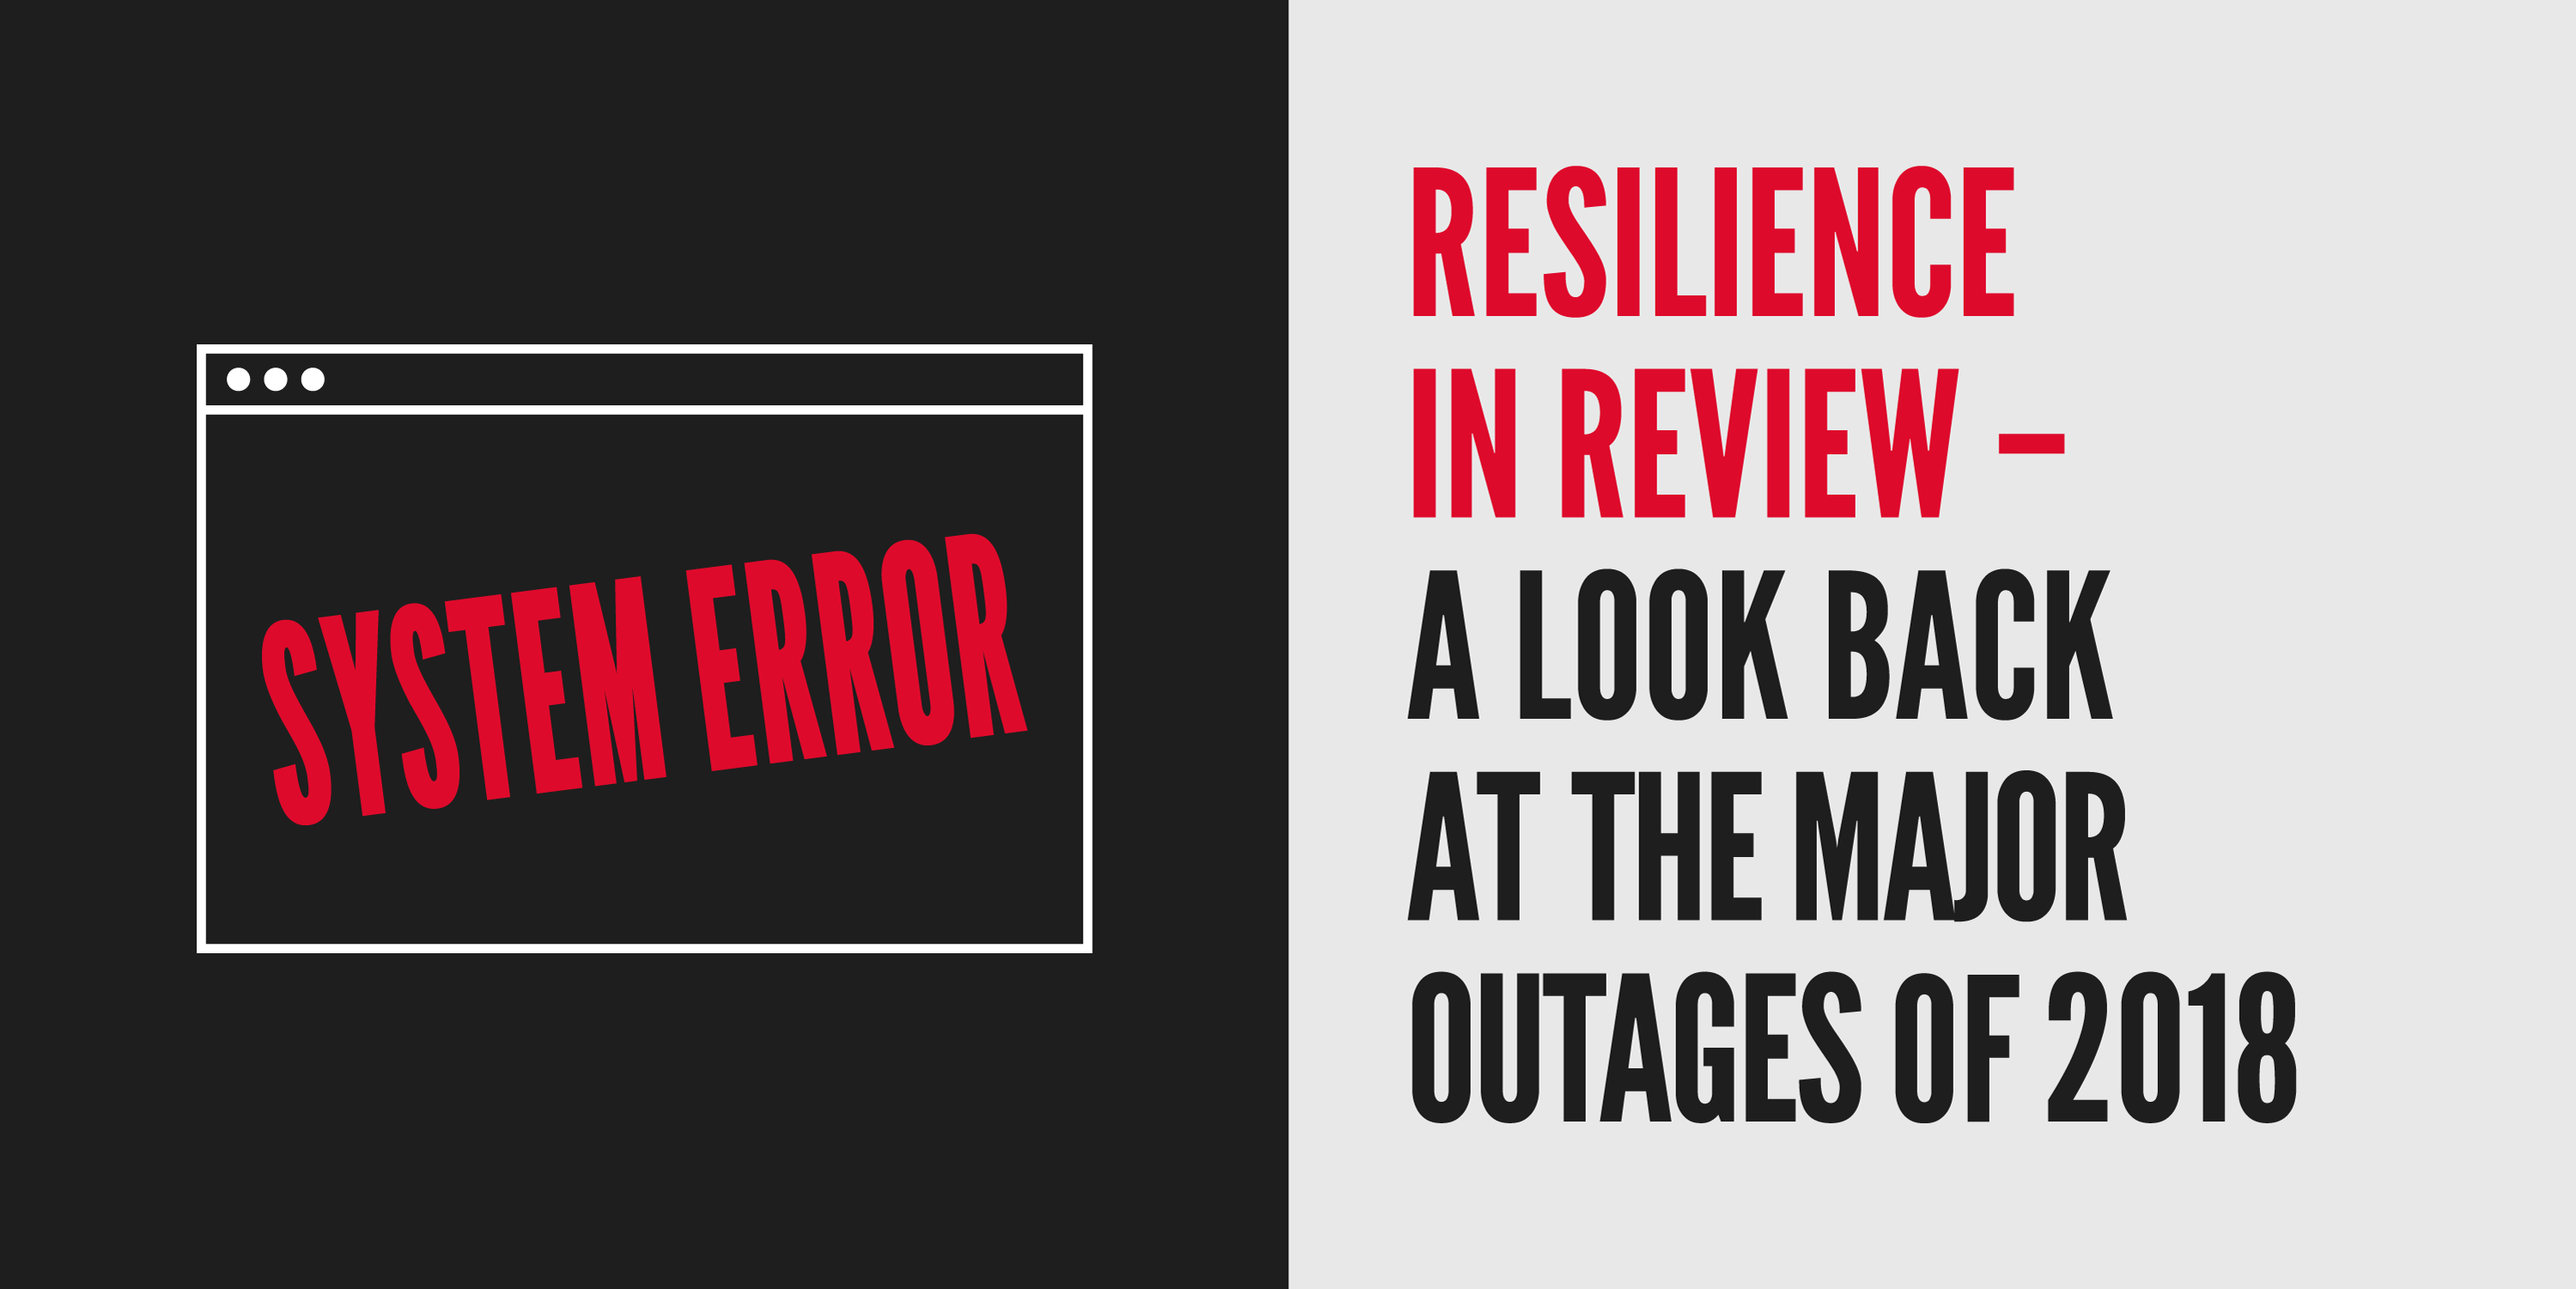 Resilience in review – Looking back at the major outages of